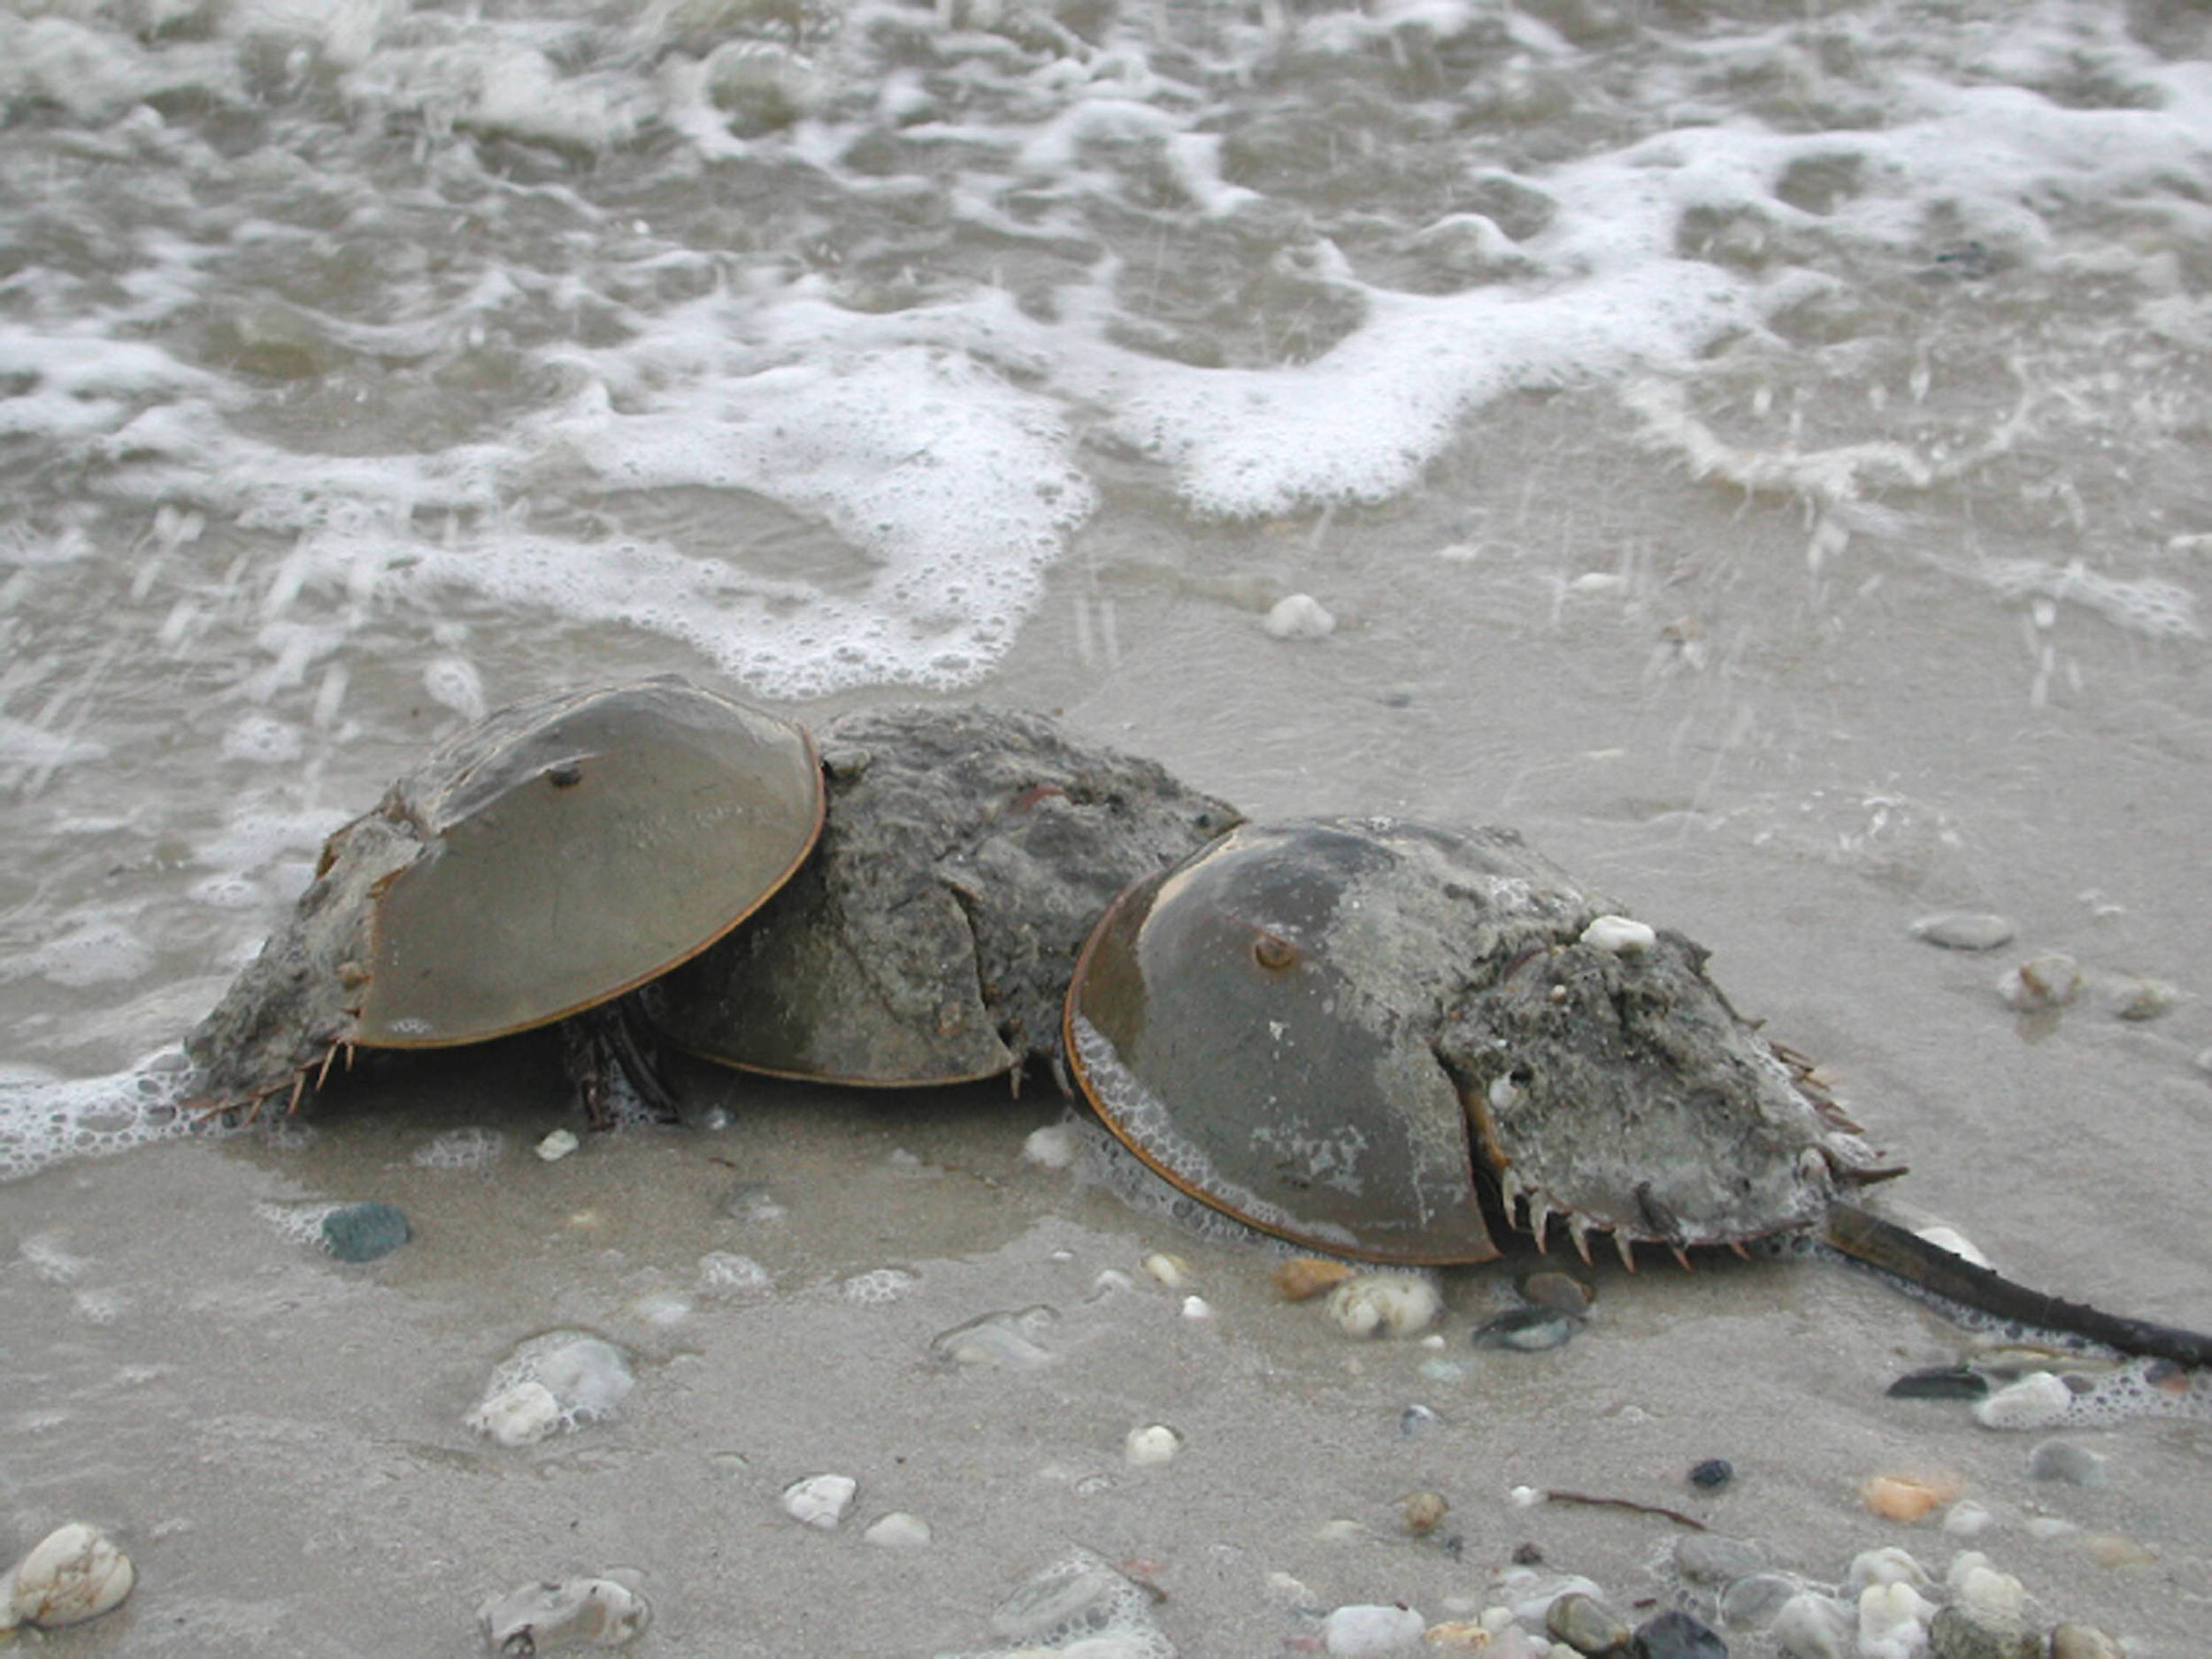 ATlantic Horseshoe crabs ( Limulus polyphemus)  are one of several species making comebacks thanks to cleaner water in the potomac river.